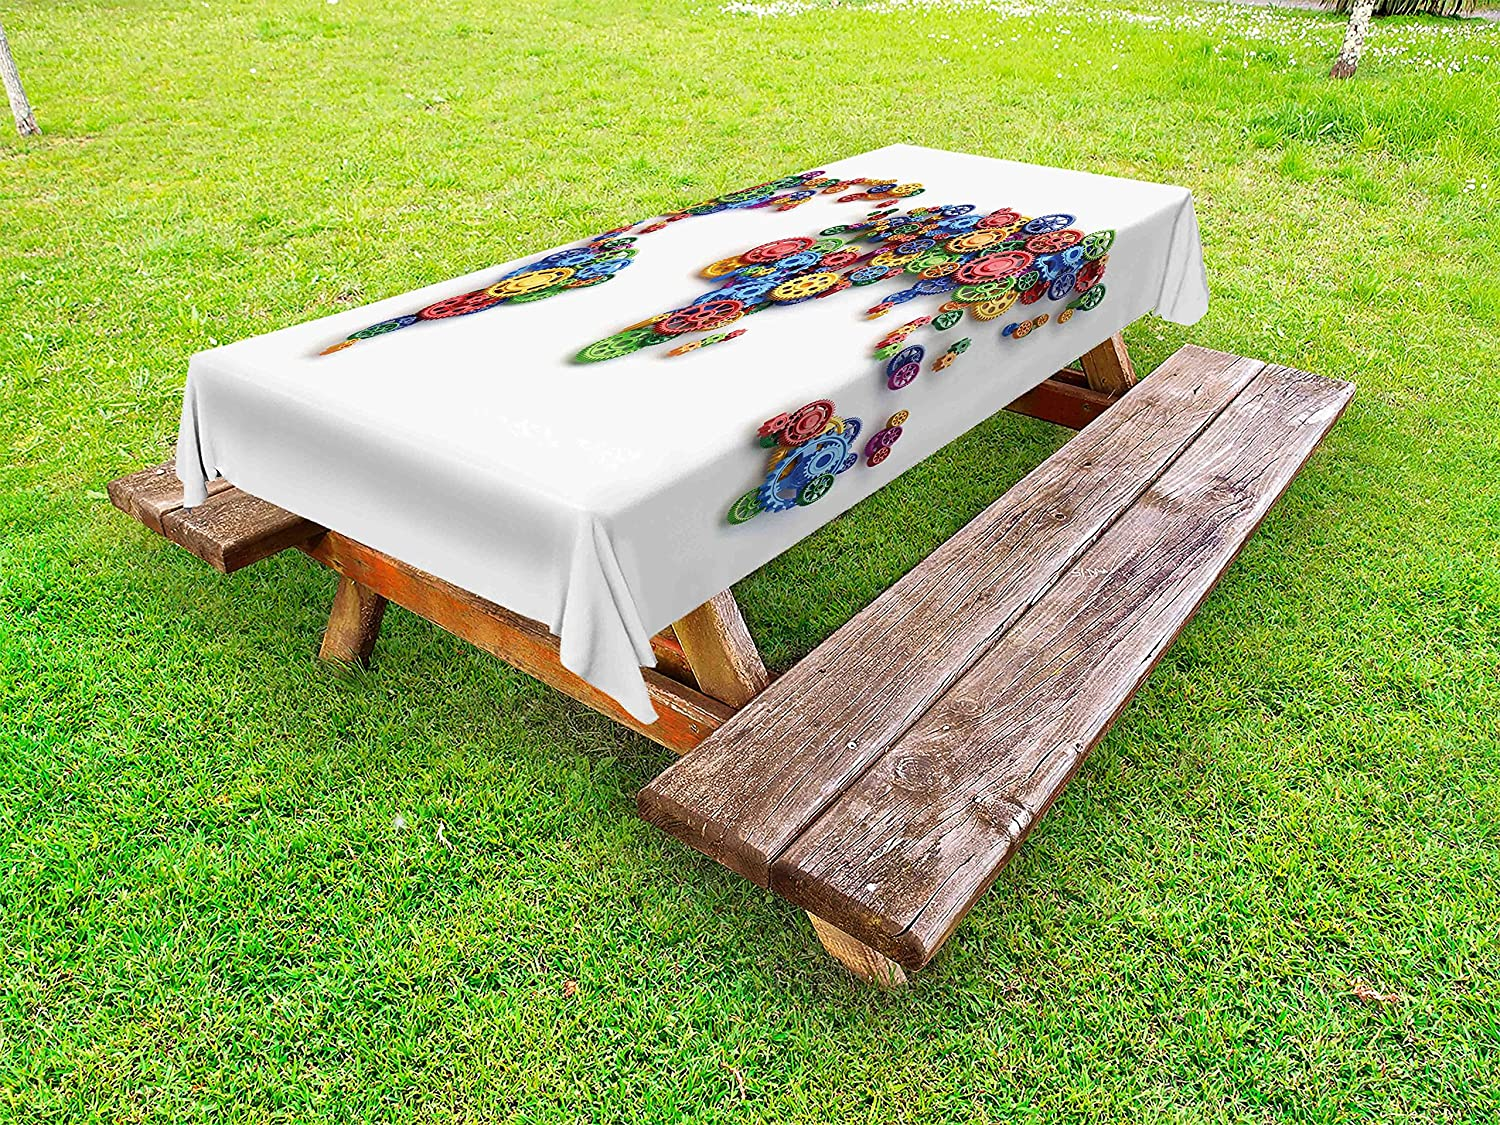 Ambesonne Industrial Outdoor Tablecloth, Map of The World Colorful Gears Design Global Economy Concept Artwork Print, Decorative Washable Picnic Table Cloth, 58